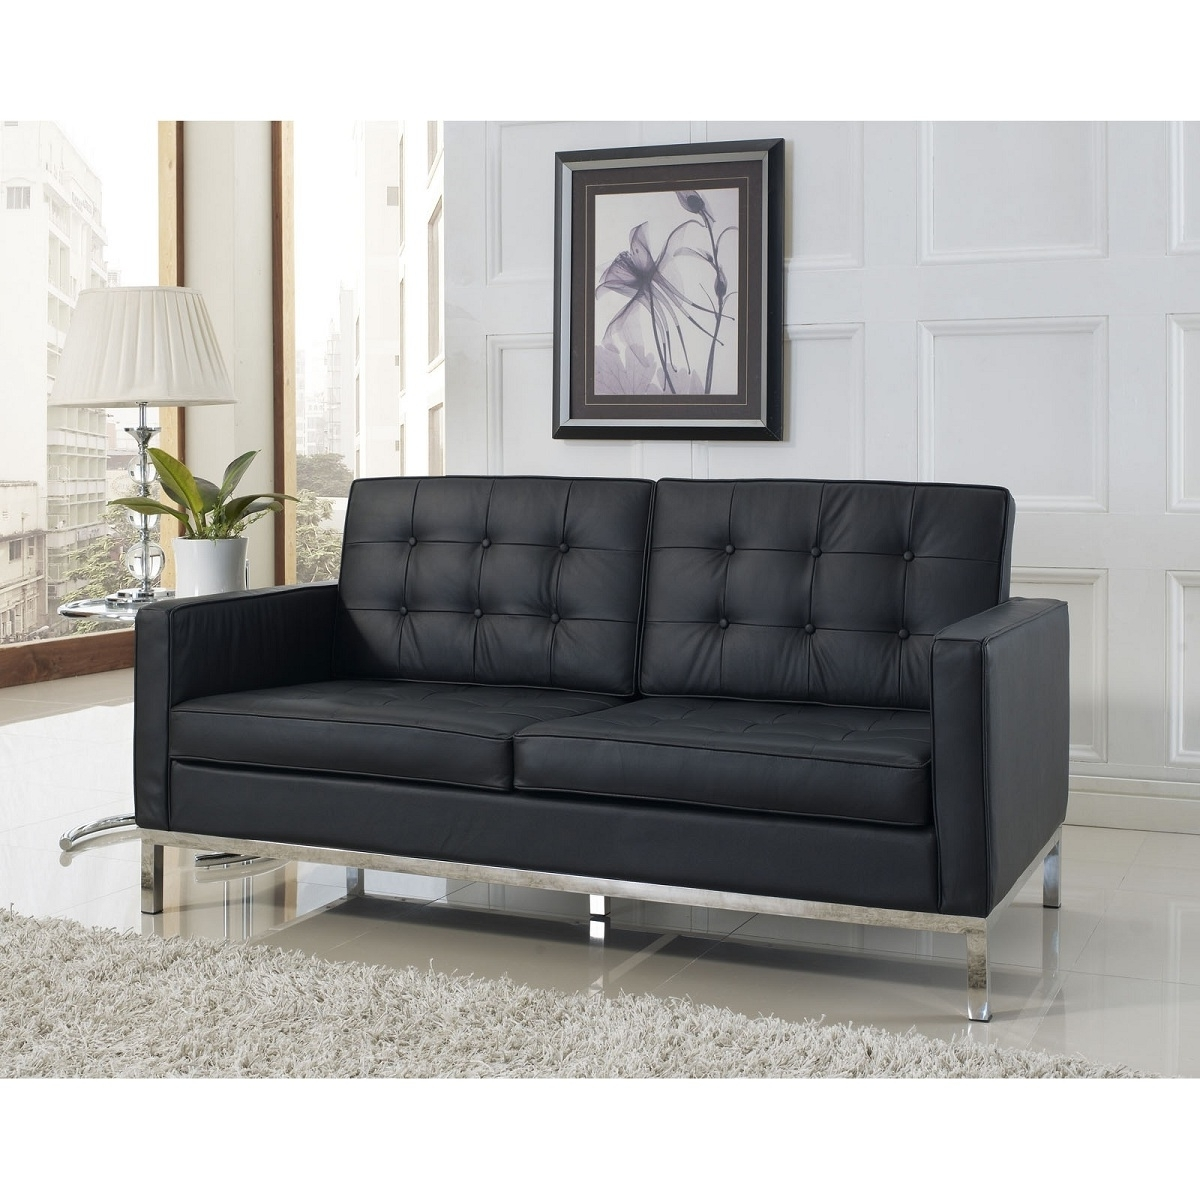 "Famous Florence Knoll Living Room Sofas Pertaining To Shop Florence 65"" Loveseat For Only $2880 (Gallery 20 of 20)"